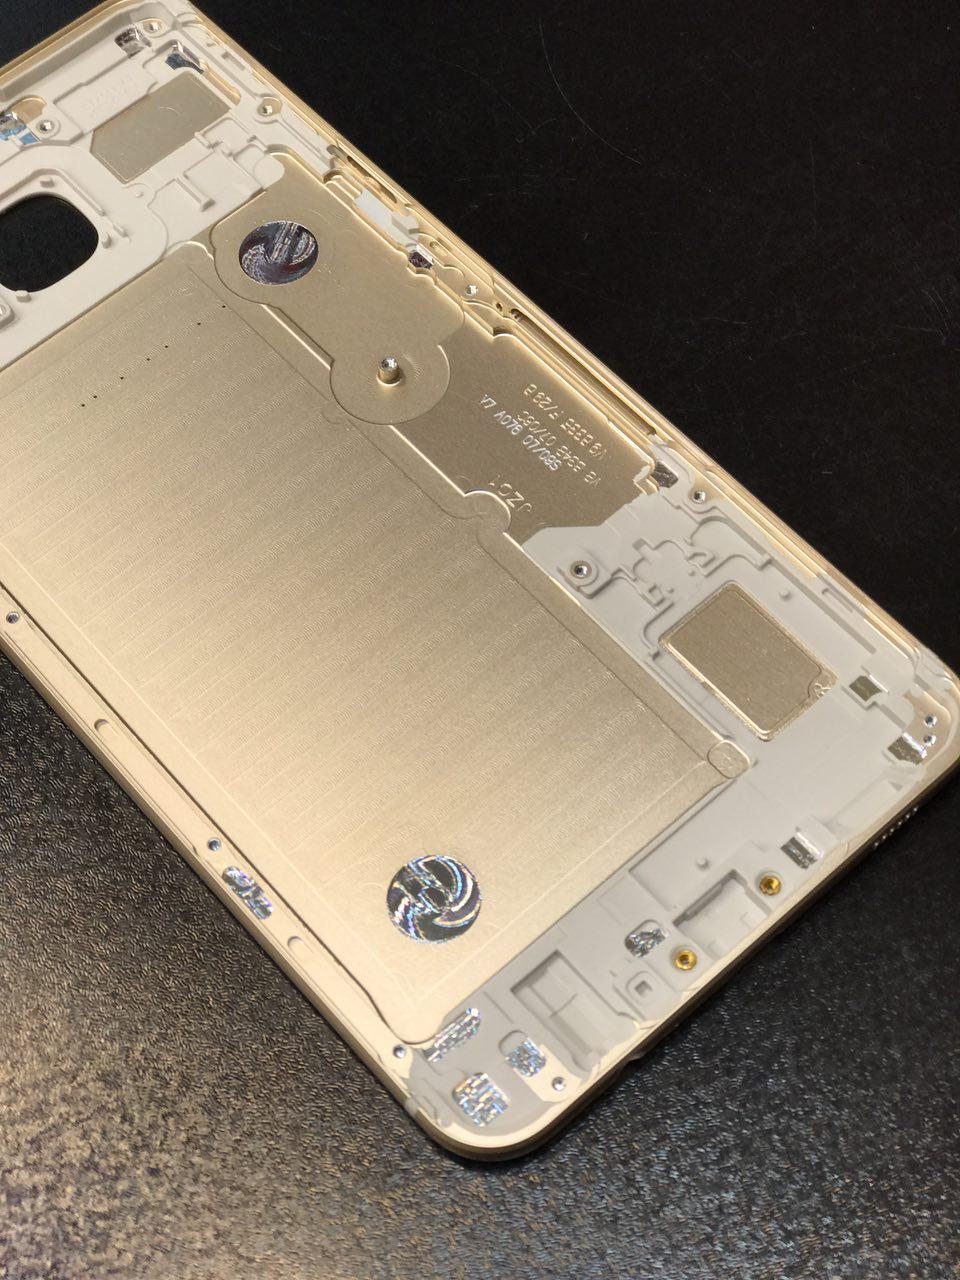 Samsung Galaxy C7 SM-C7000 Full Original Cover Housing Faceplate Body Panel Complete Parts